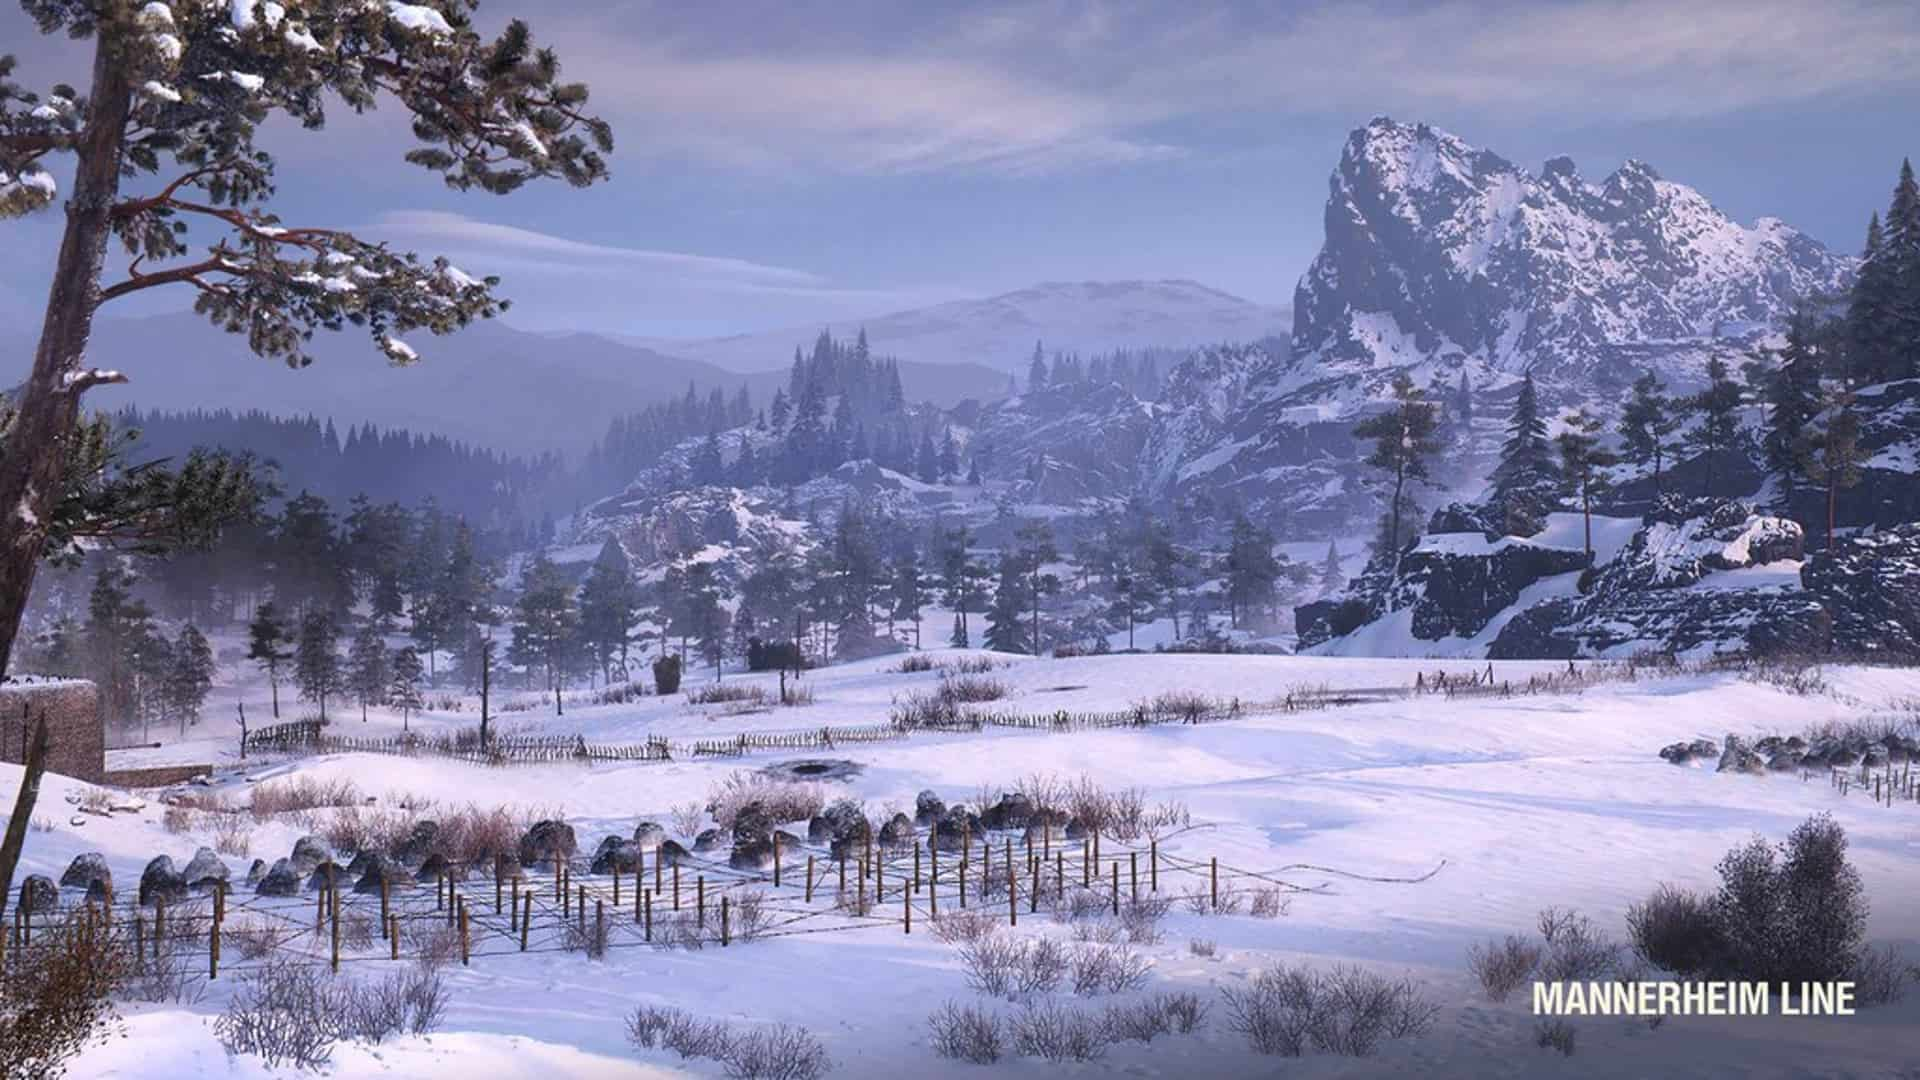 World of Tanks 1 0 update overhauls the game's graphics and more